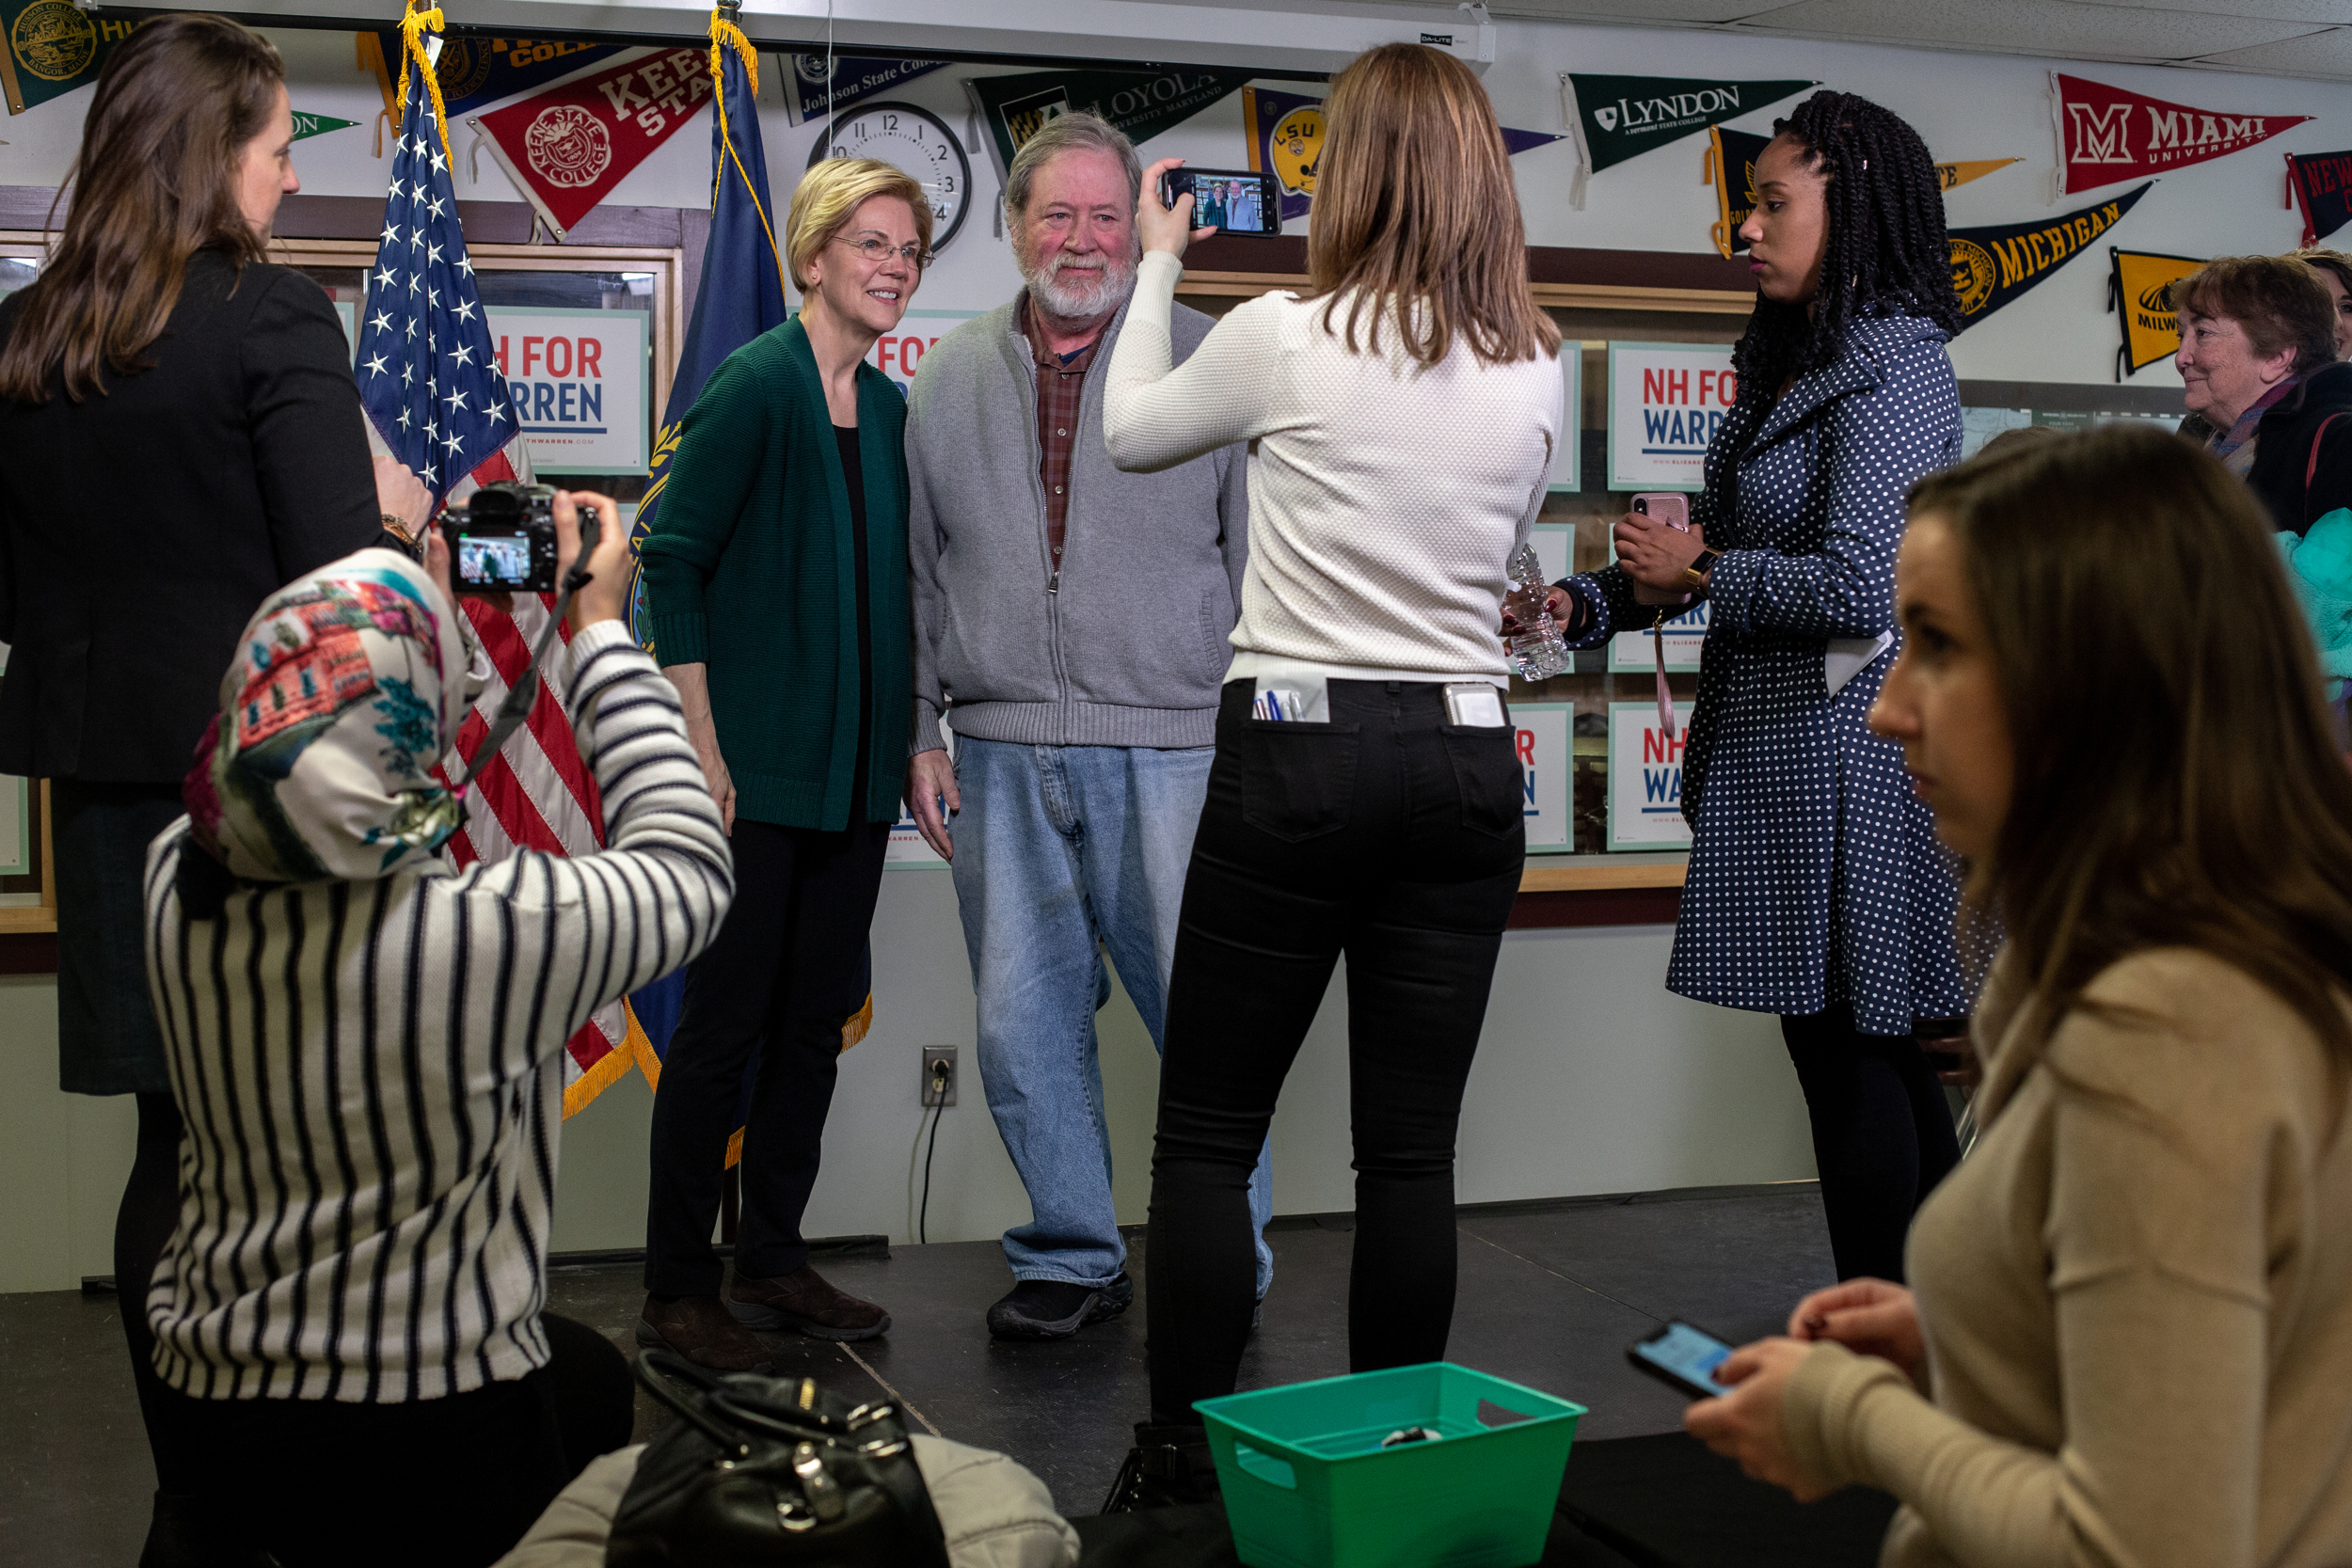 Senator Elizabeth Warren of Massachusetts visits with guests after a campaign stop called 'Community Conversations with Elizabeth Warren on the Opioid Crisis' at the Littleton High School in Littleton, New Hampshire, Saturday, March 23, 2019. According to the National Institute on Drug Abuse, New Hampshire is second in the country for highest opioid-related overdose deaths. The U.S. Department of Health and Human Services recently announced New Hampshire will be allocated an additional $12 million to combat the crisis.